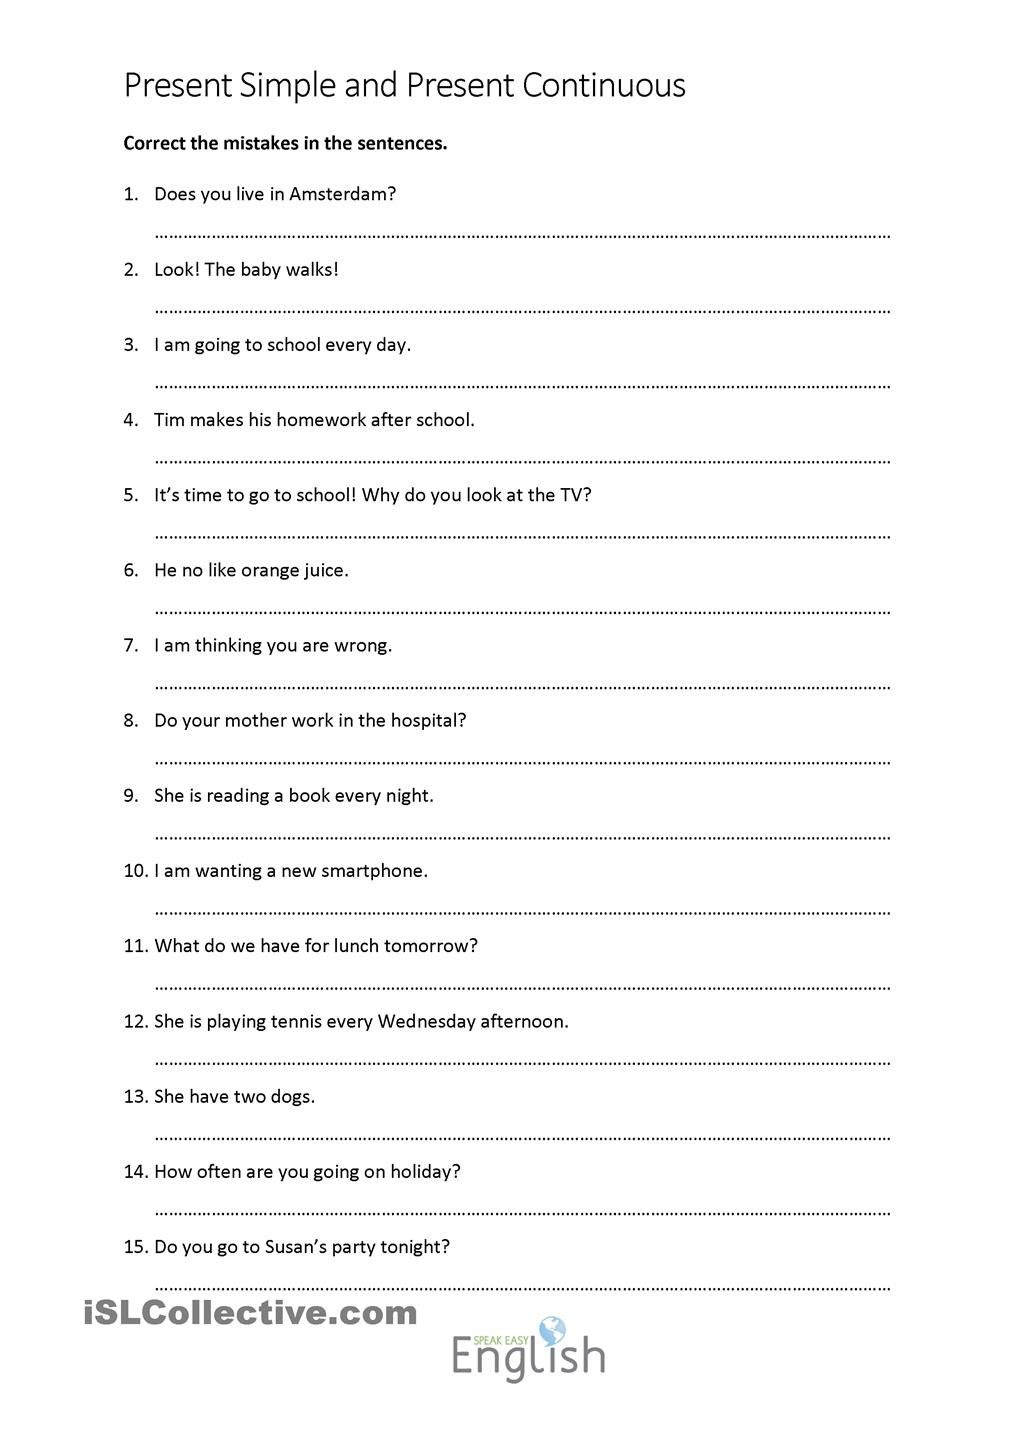 Present Simple/continuous Error Correction With Answers   Teaching - Free Printable Sentence Correction Worksheets